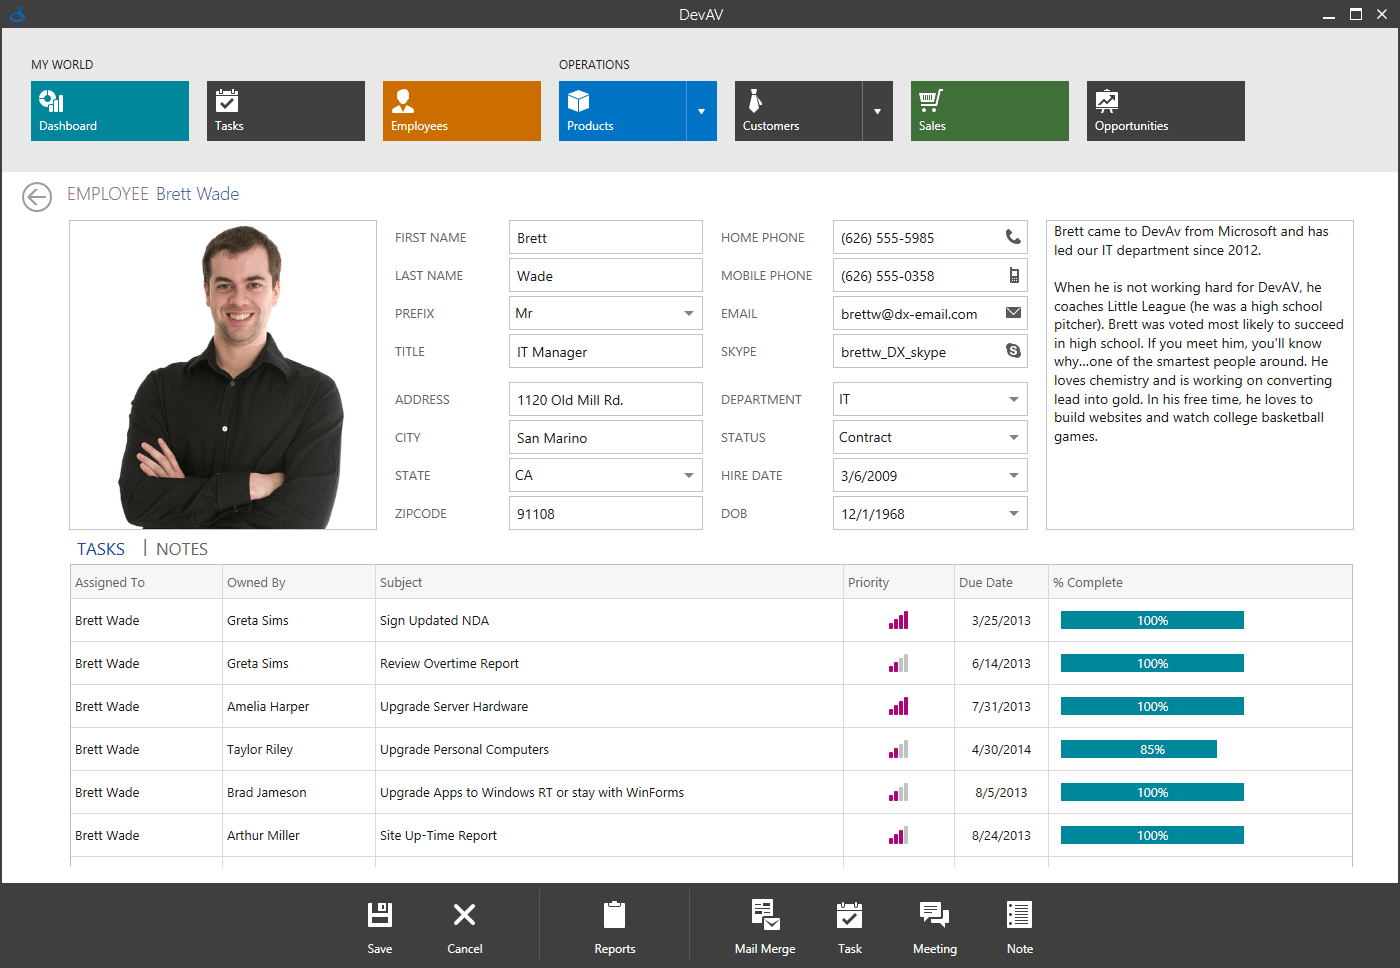 WPF Touch-Enabled Hybrid App with Data Editors